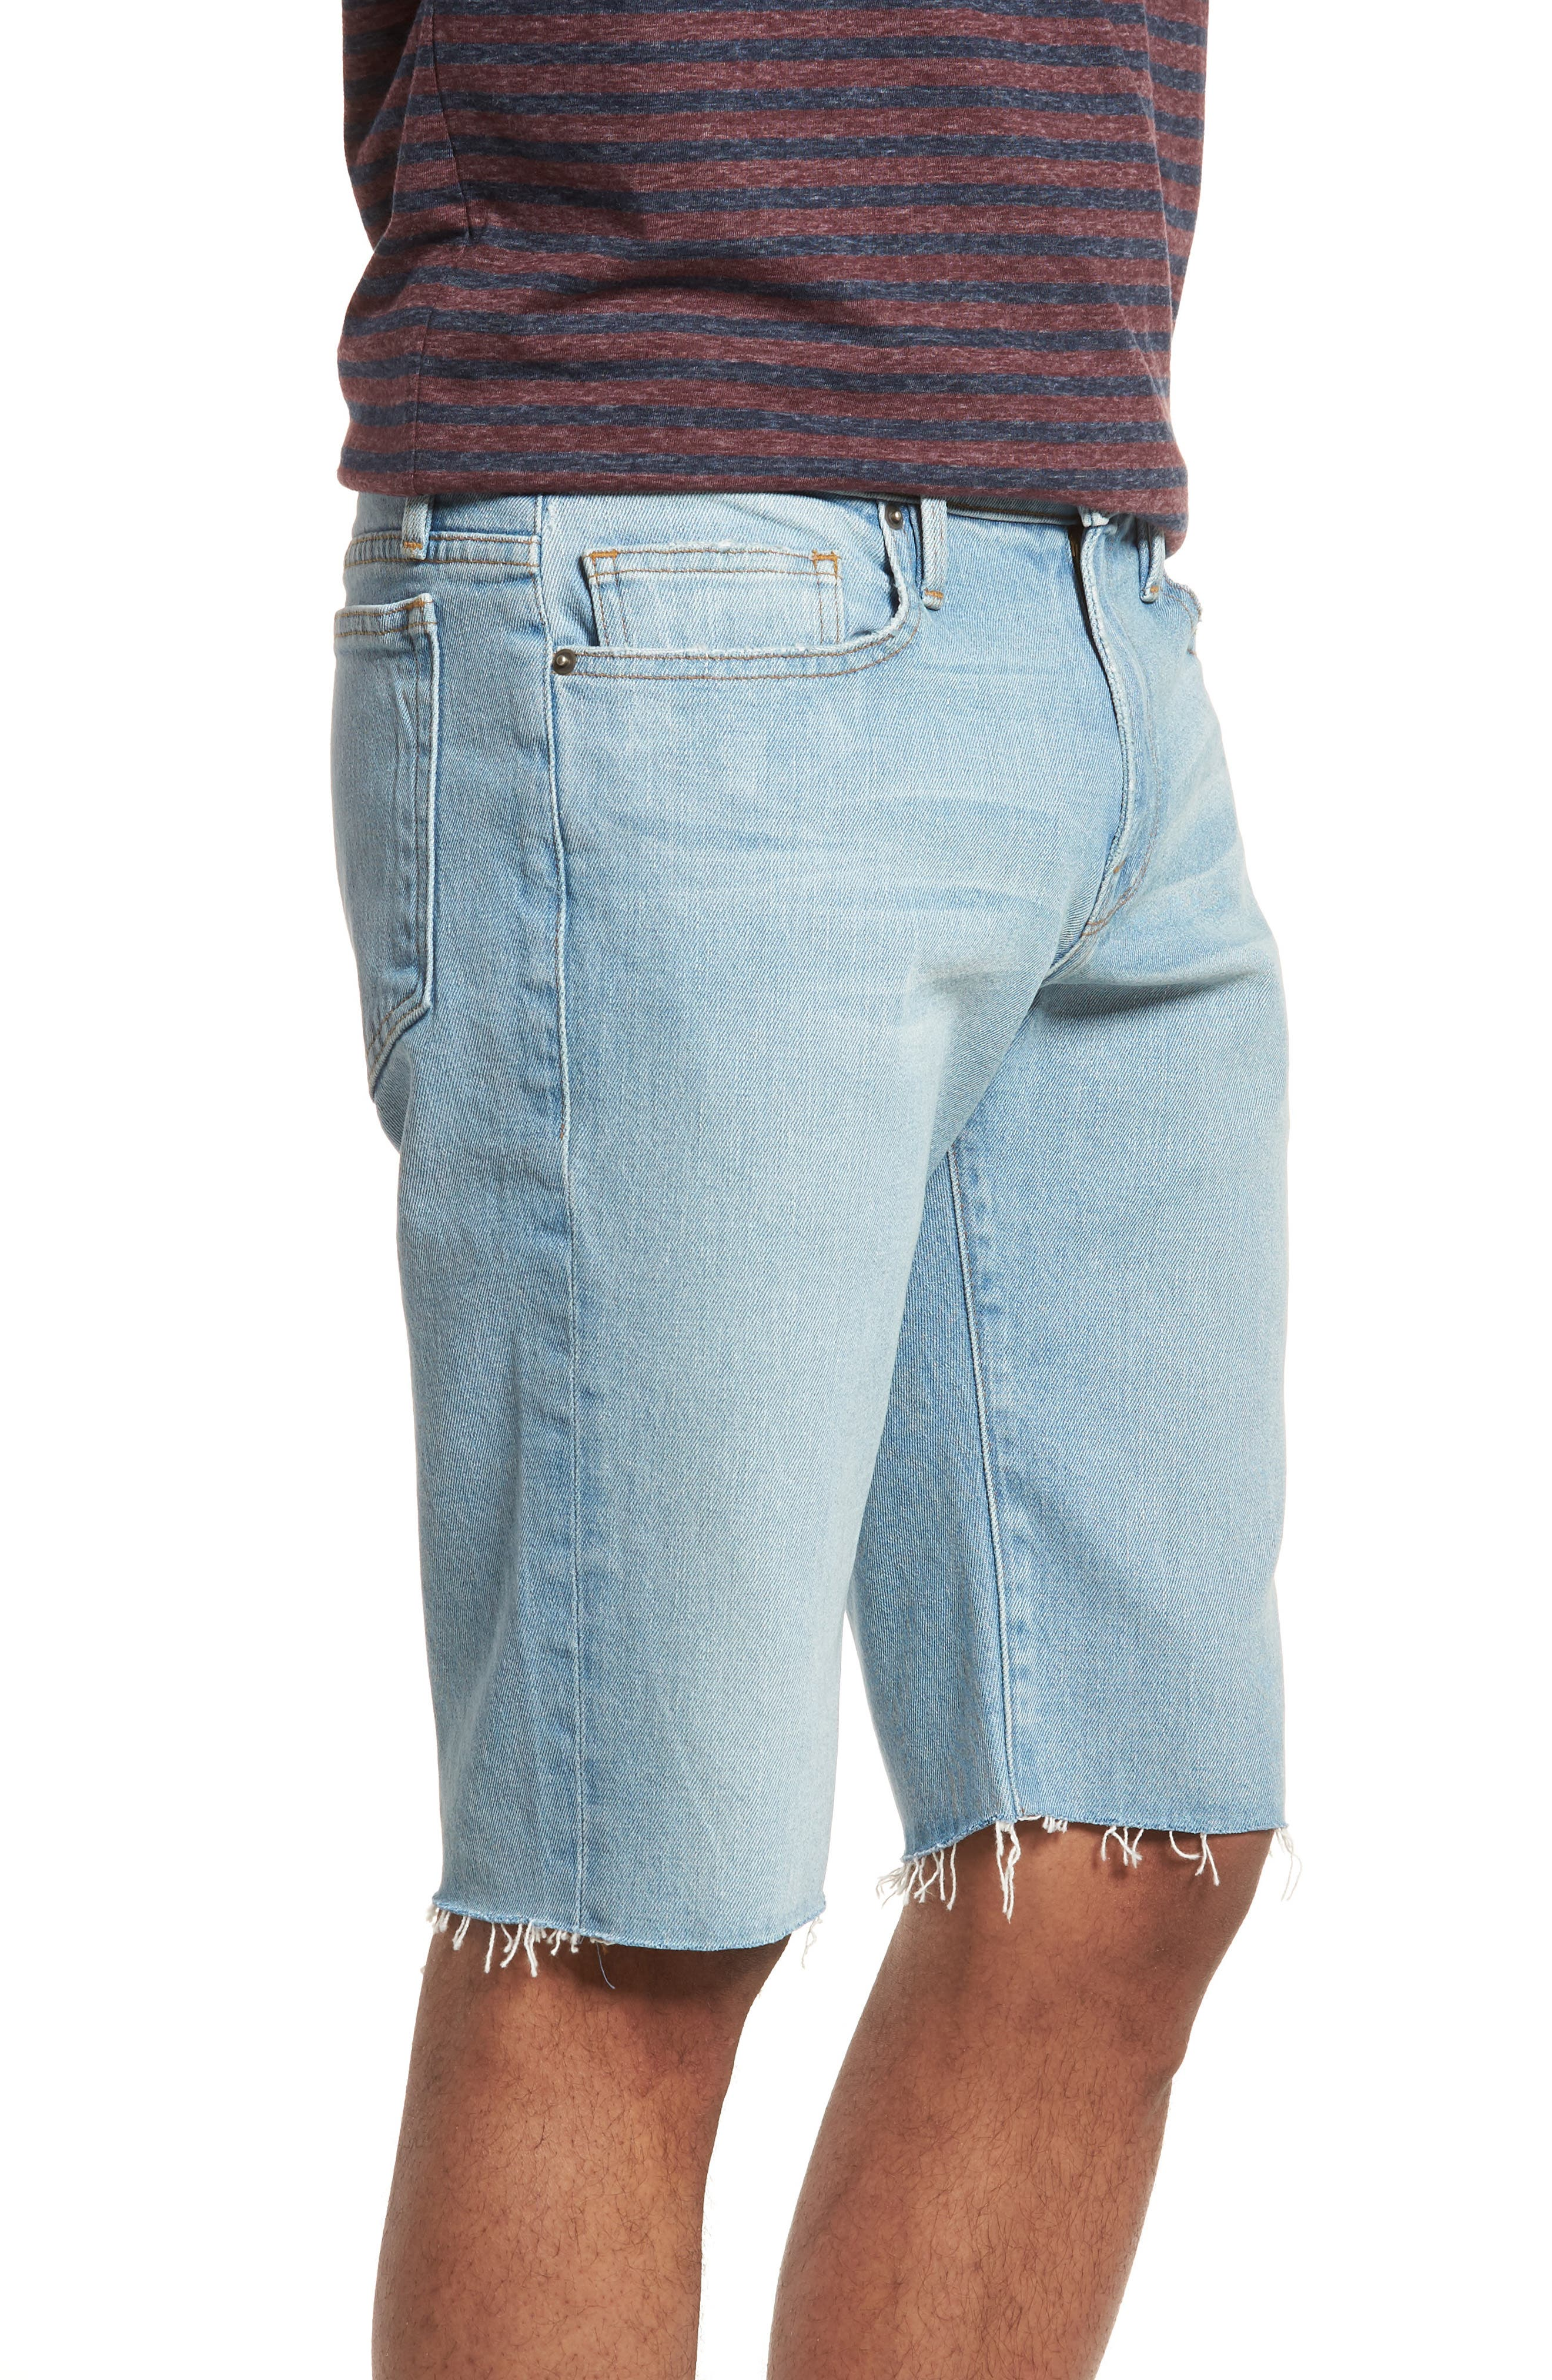 L'Homme Cutoff Denim Shorts,                             Alternate thumbnail 4, color,                             Crosby